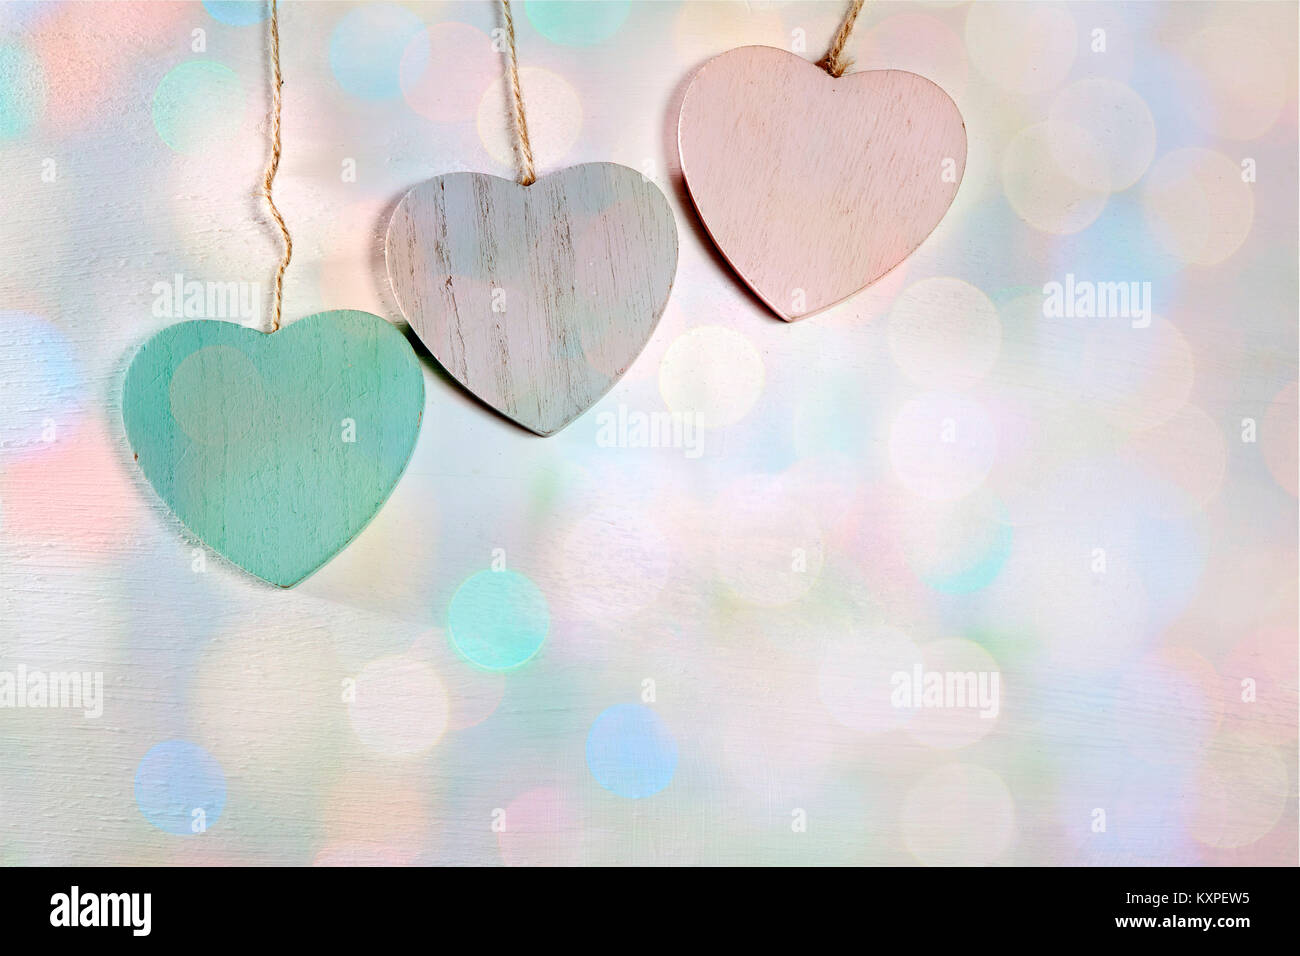 The Three Wooden Hearts Hang On A Wooden Wall Stock Photo 171368993